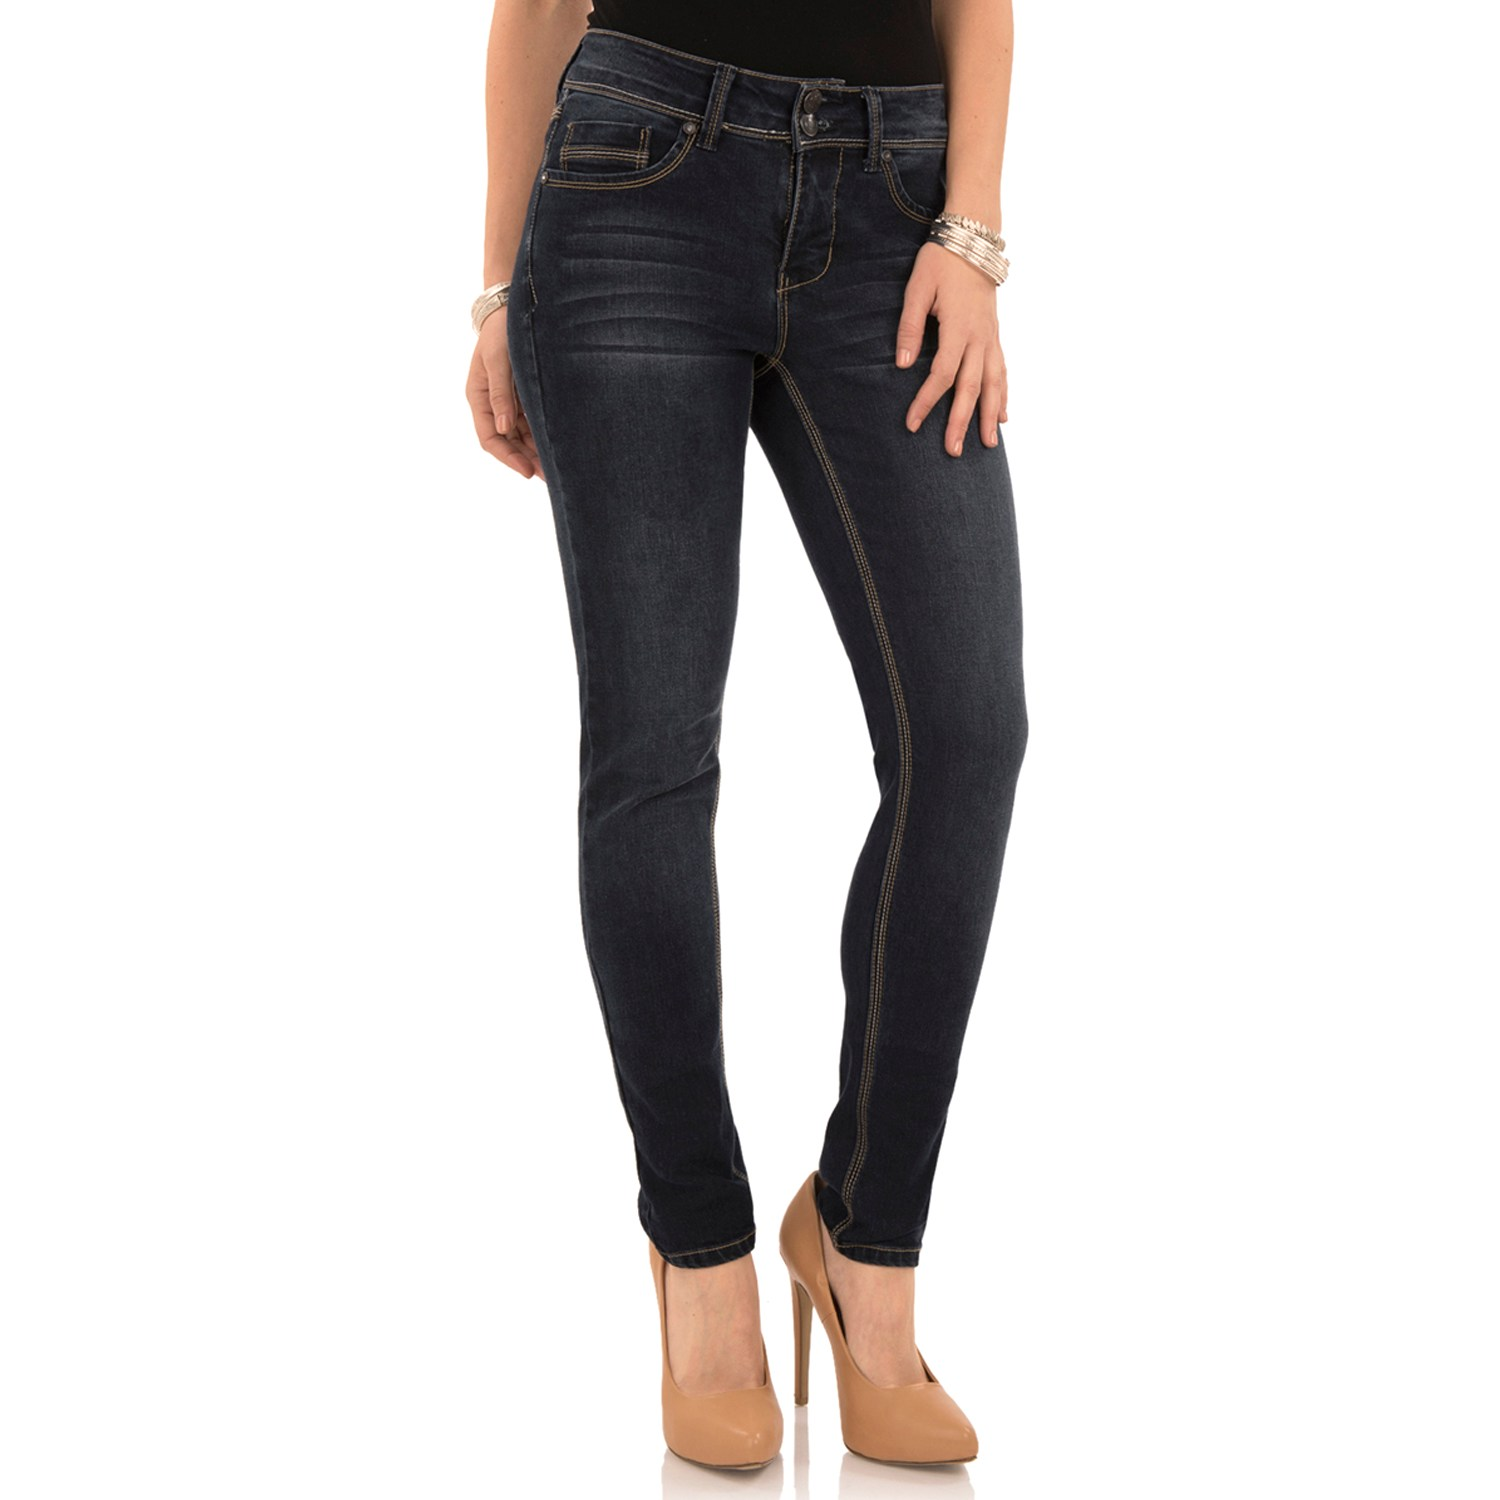 Angels – WOMEN'S JEANS WITH A PERFECT FIT